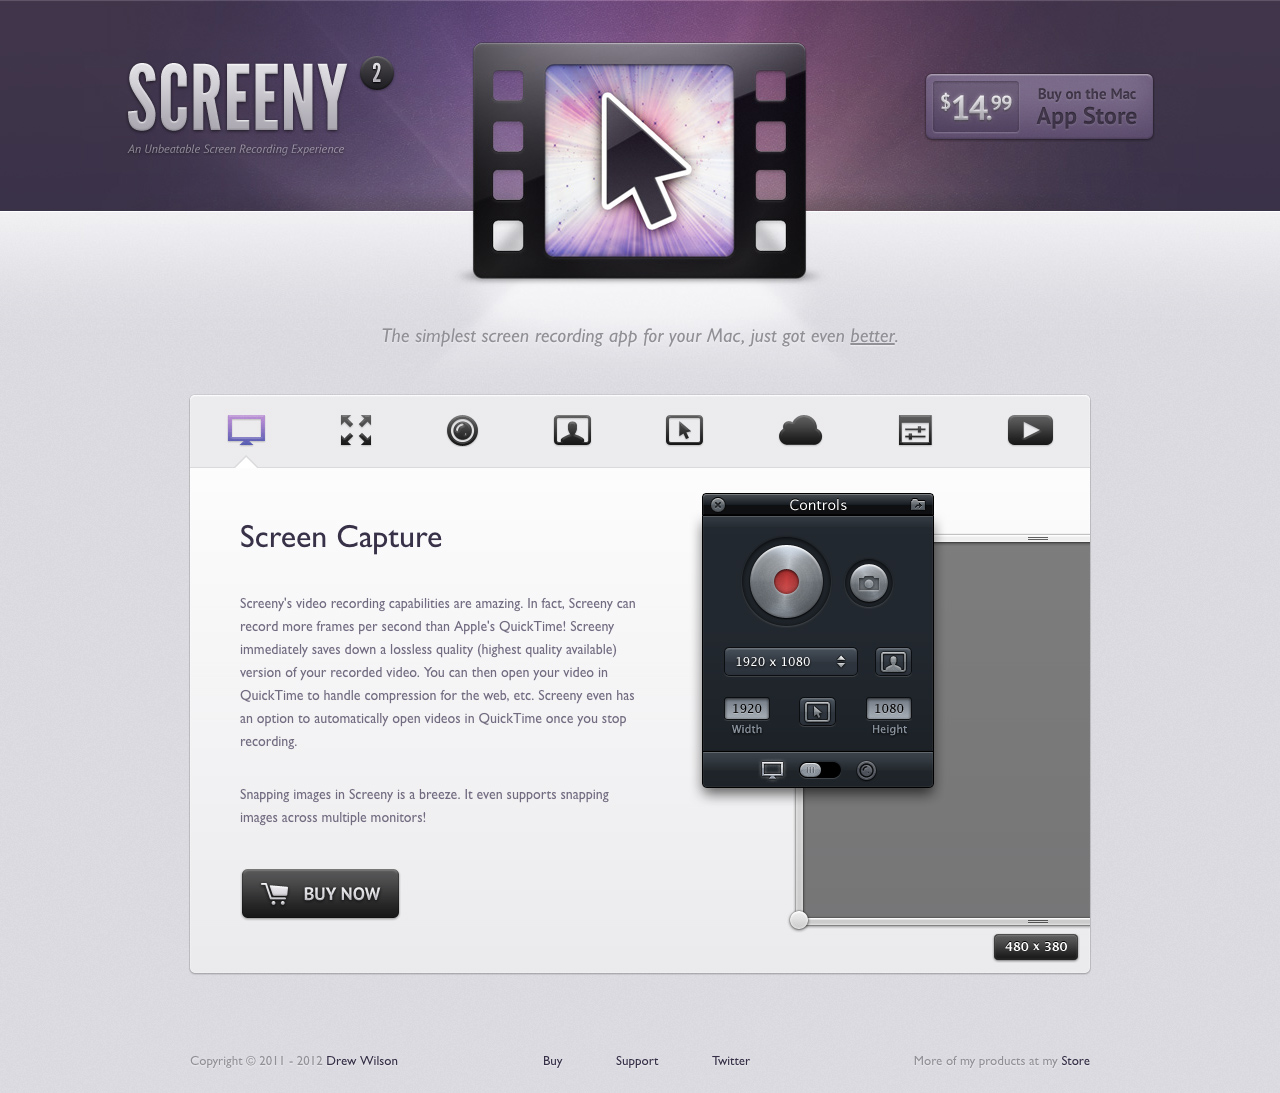 Screeny Website Screenshot